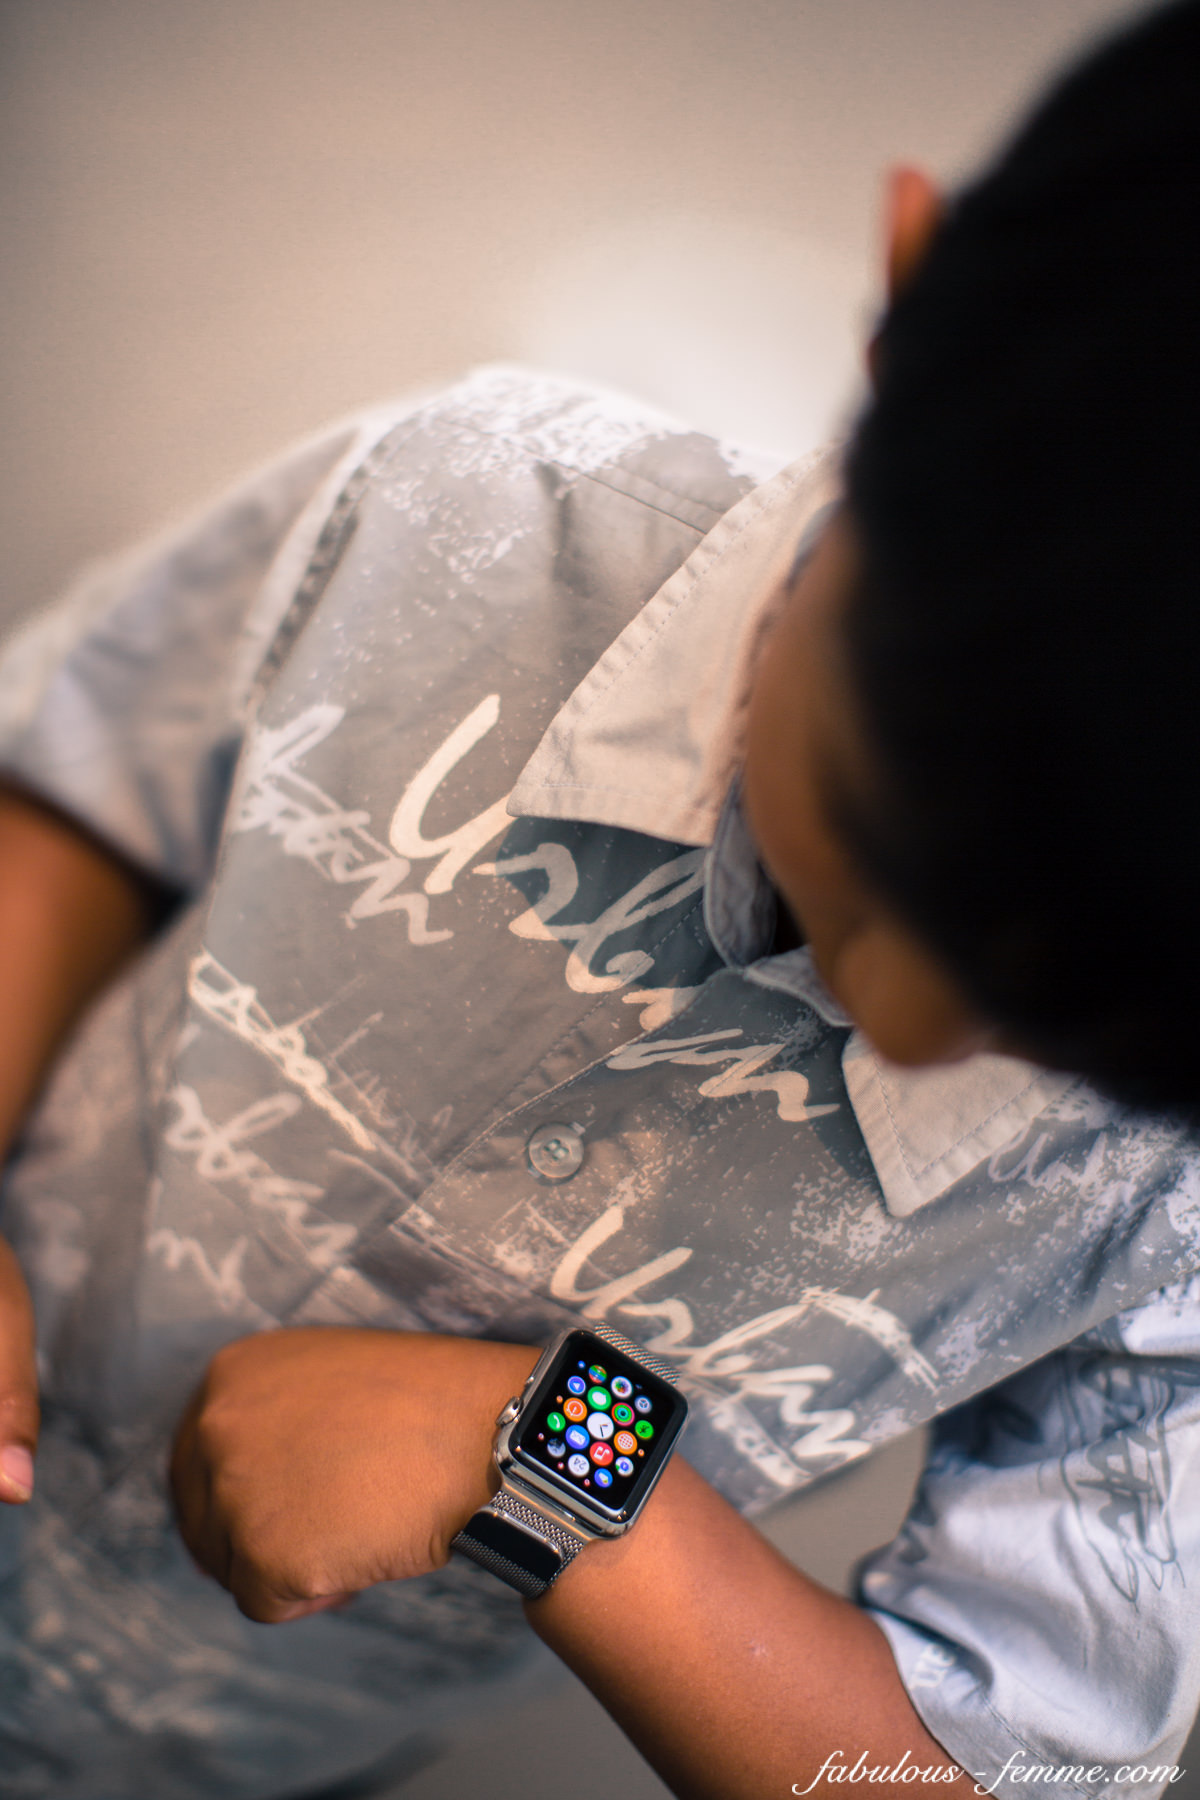 apple watch is not a fashion accessoire - kids wearing it